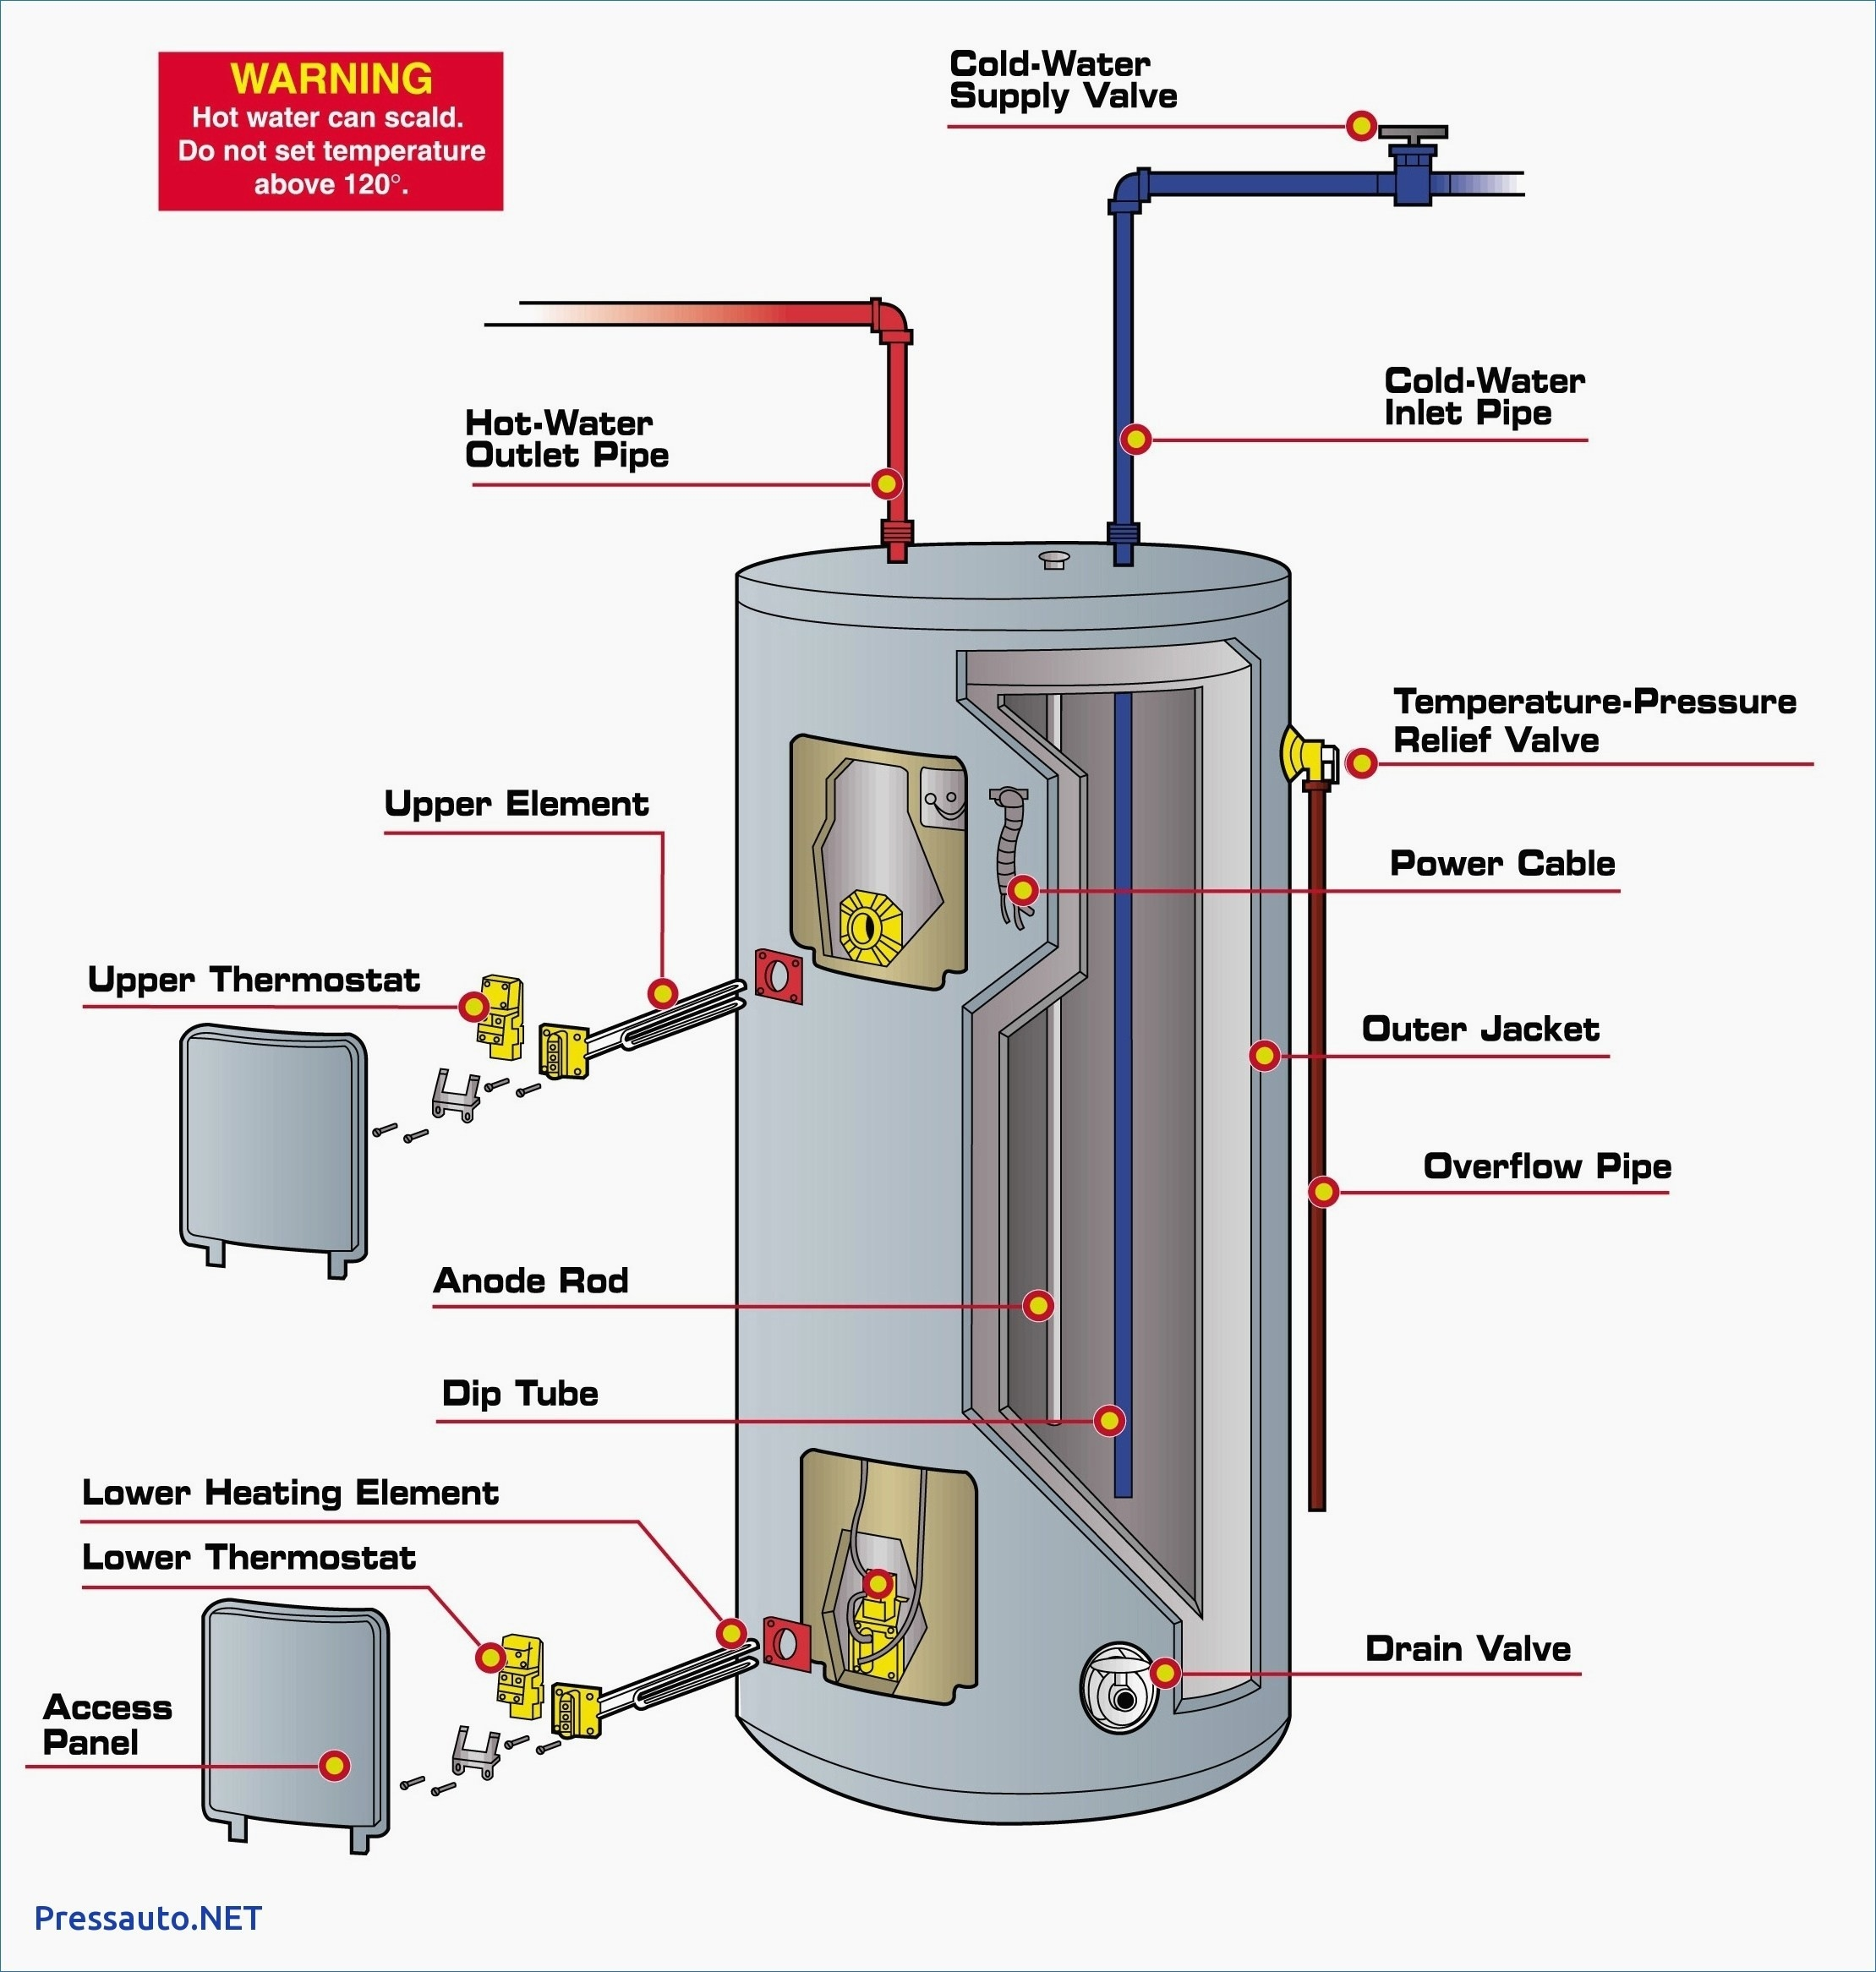 hot water heater wiring diagram Collection-Wiring Diagram Electric Water Heater Fresh New Hot Water Heater Wiring Diagram Diagram 9-g